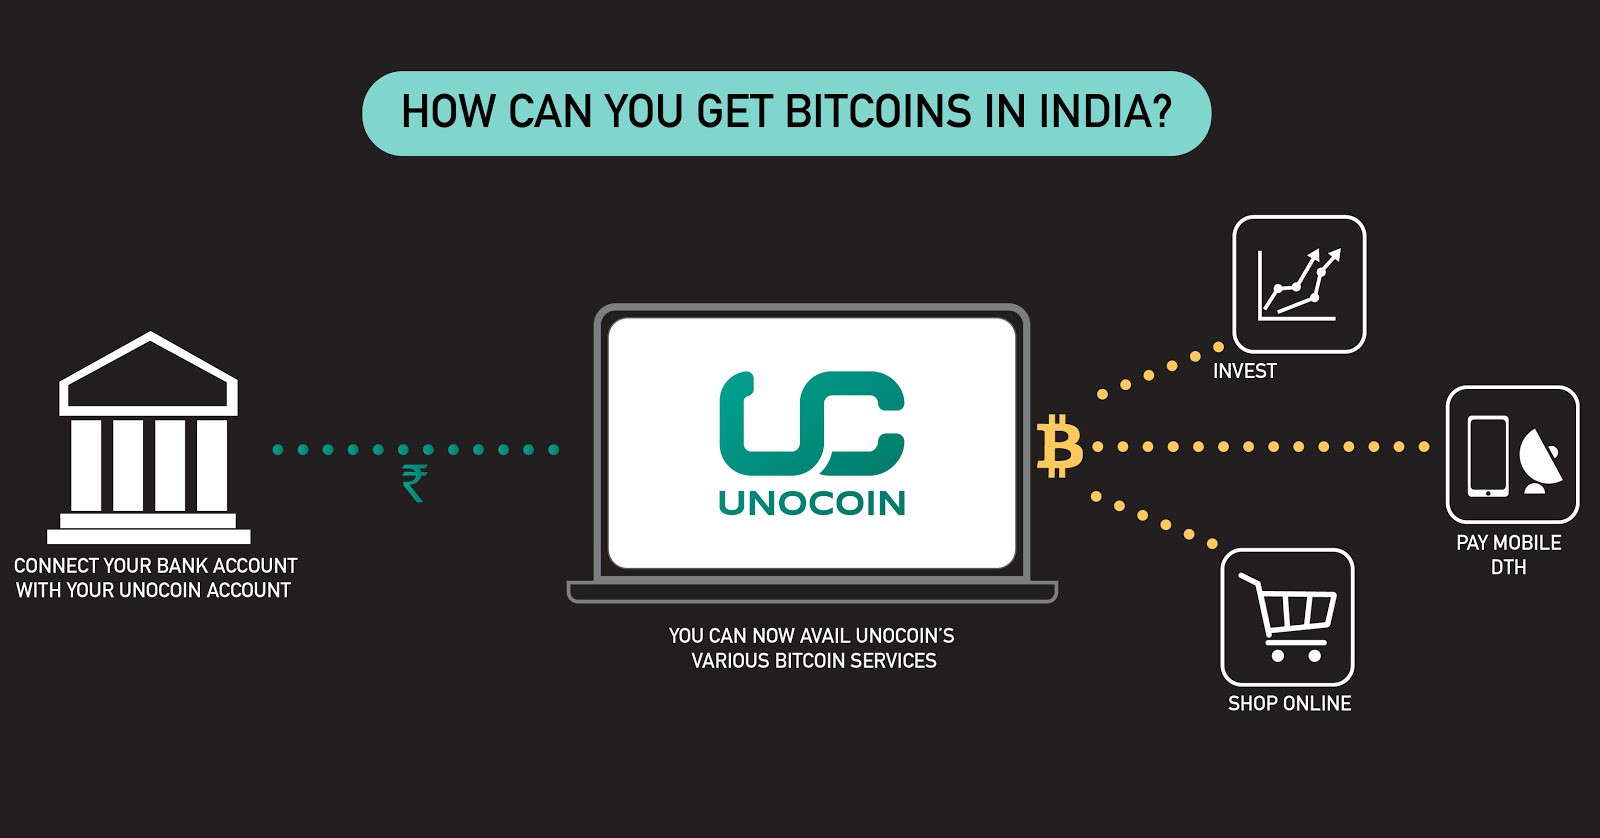 unocoin cryptocurrency exchange in india